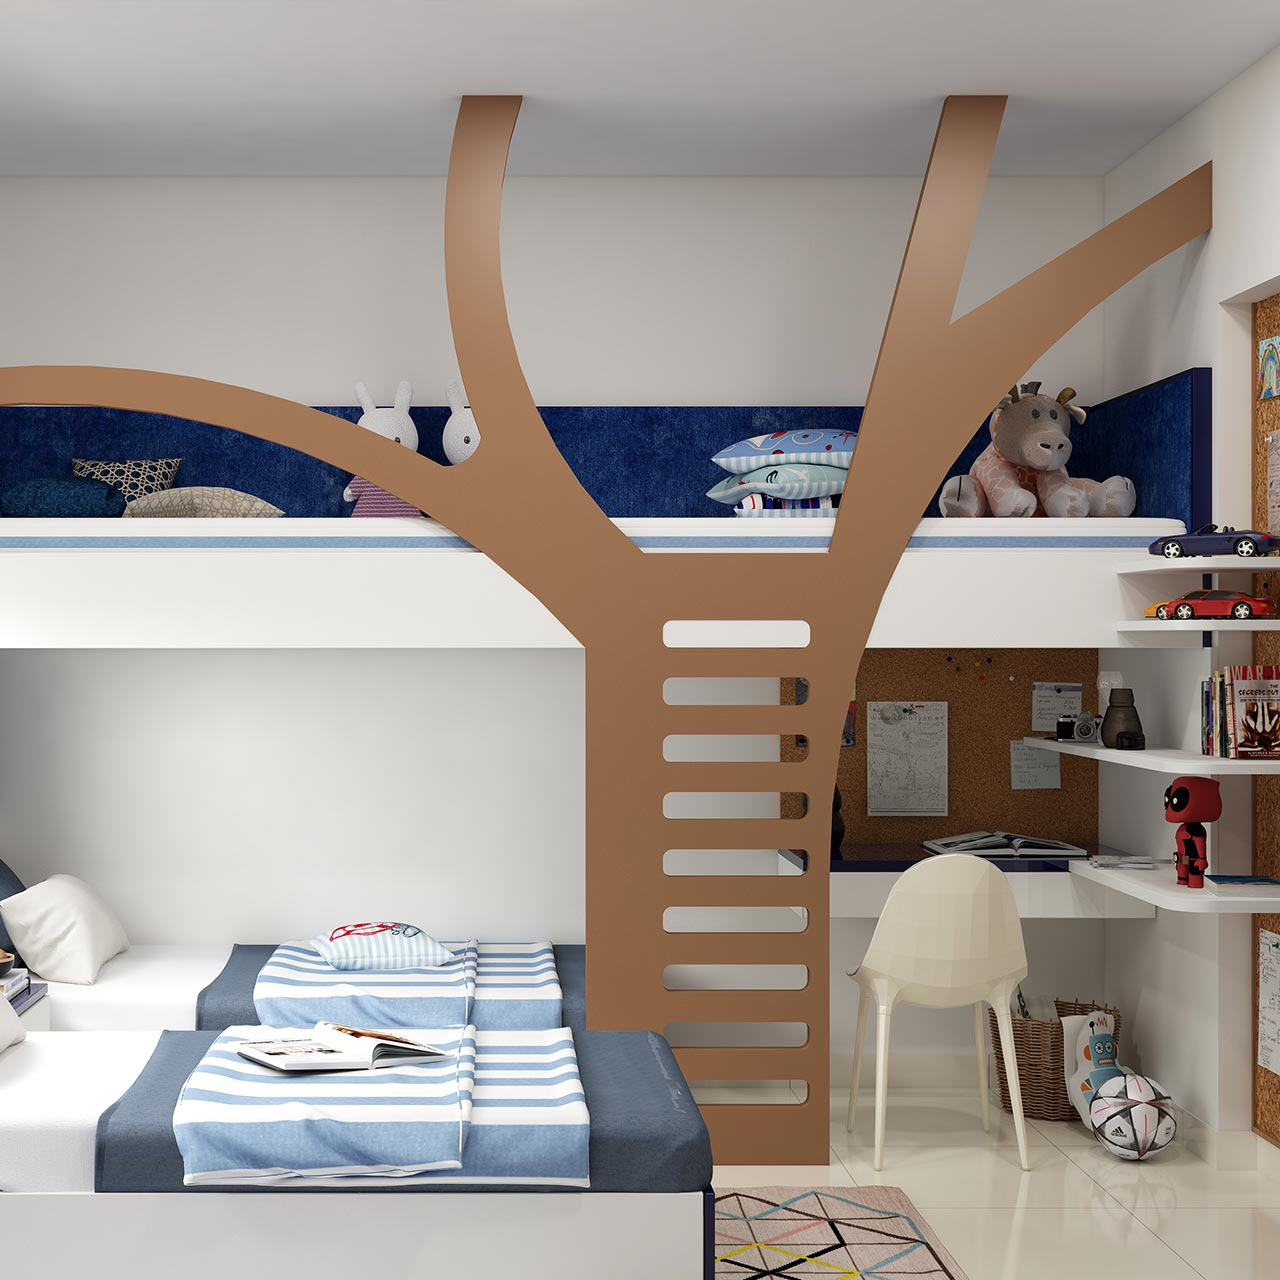 Kids bedroom where they study, play, perform activities and even catch up with their little friends and here are some children bedroom ideas